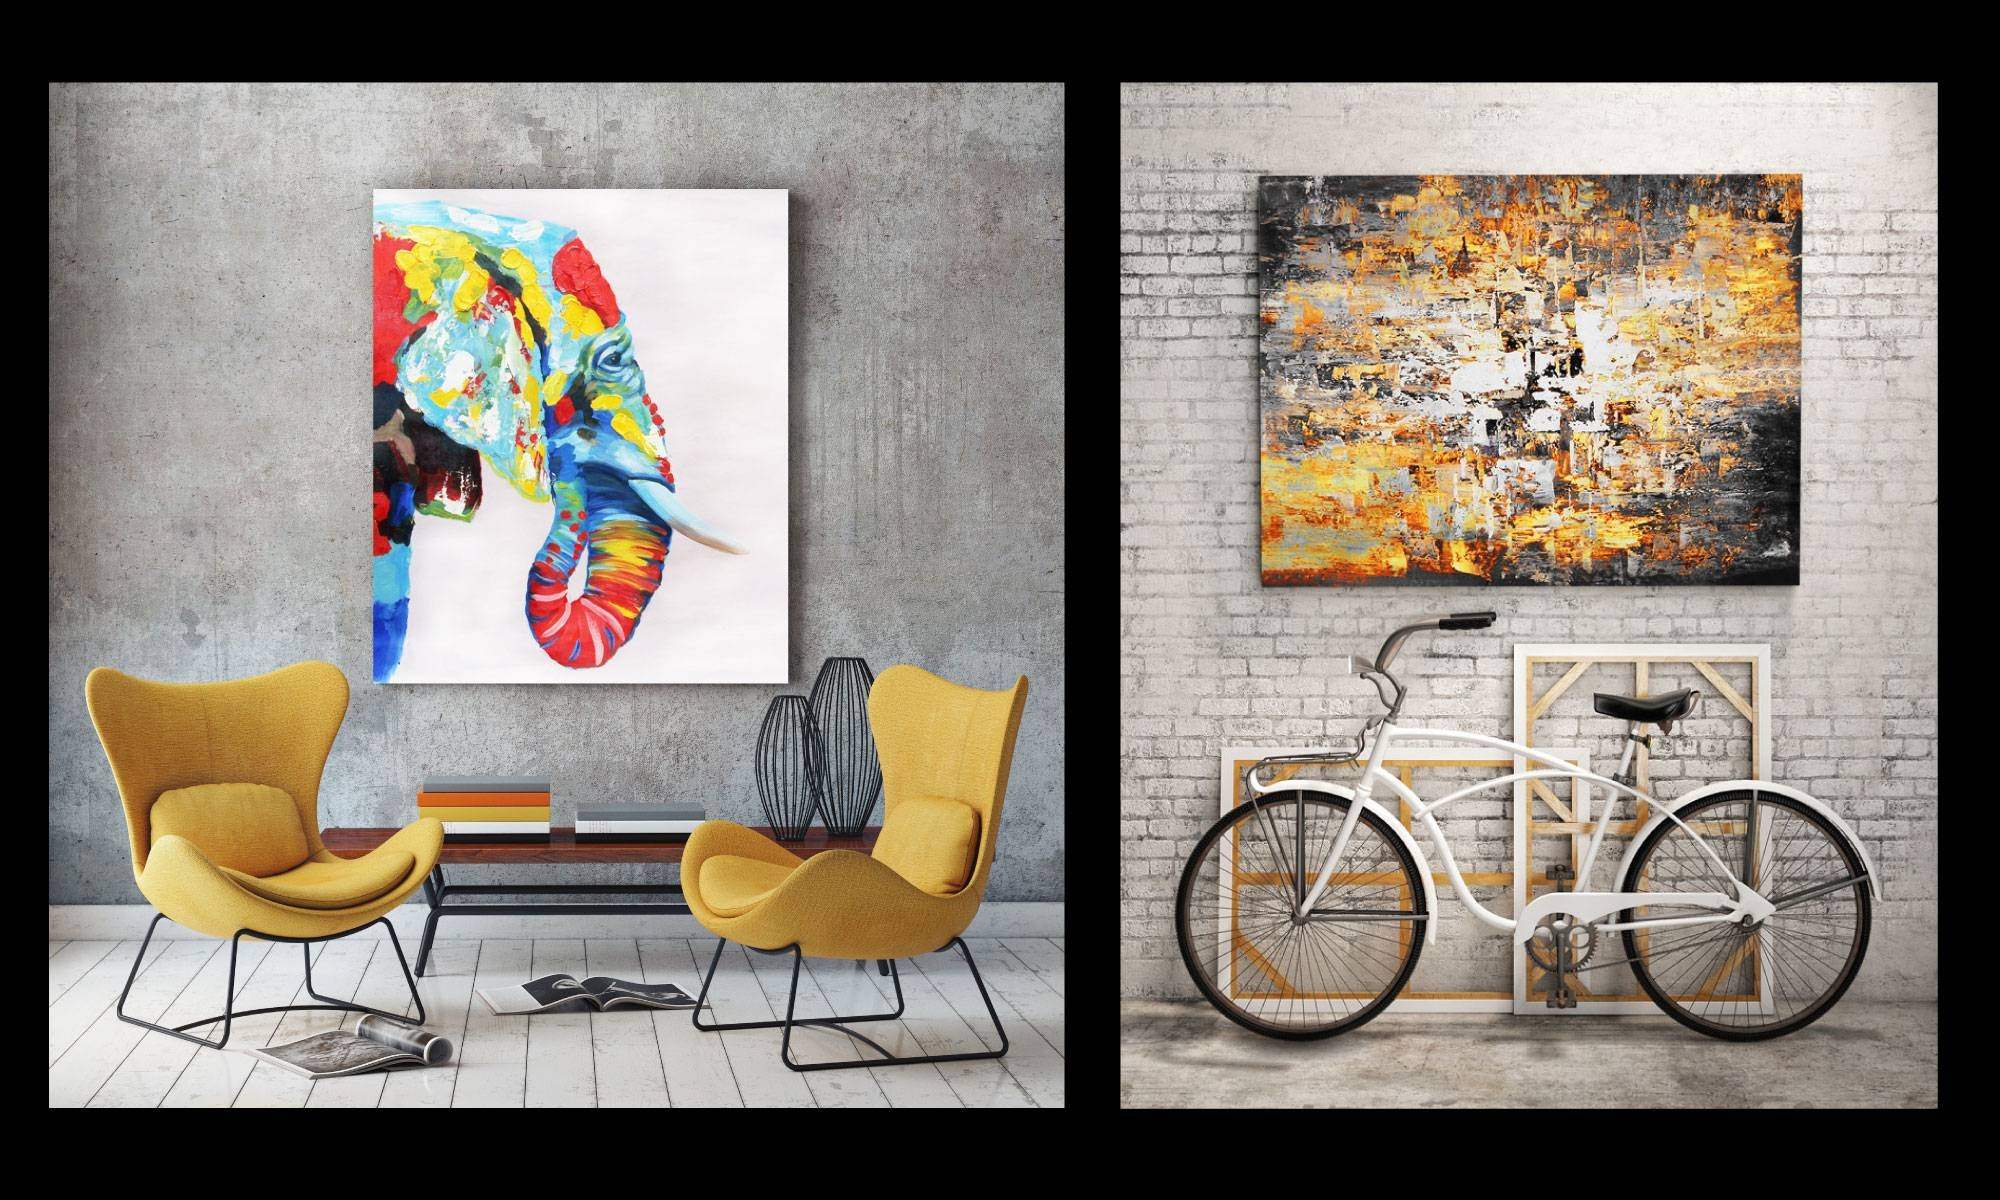 Wall Art Designs: Excited Wall Art For Sale Online Prints Hanging With Regard To Most Current Modern Wall Art For Sale (View 16 of 20)